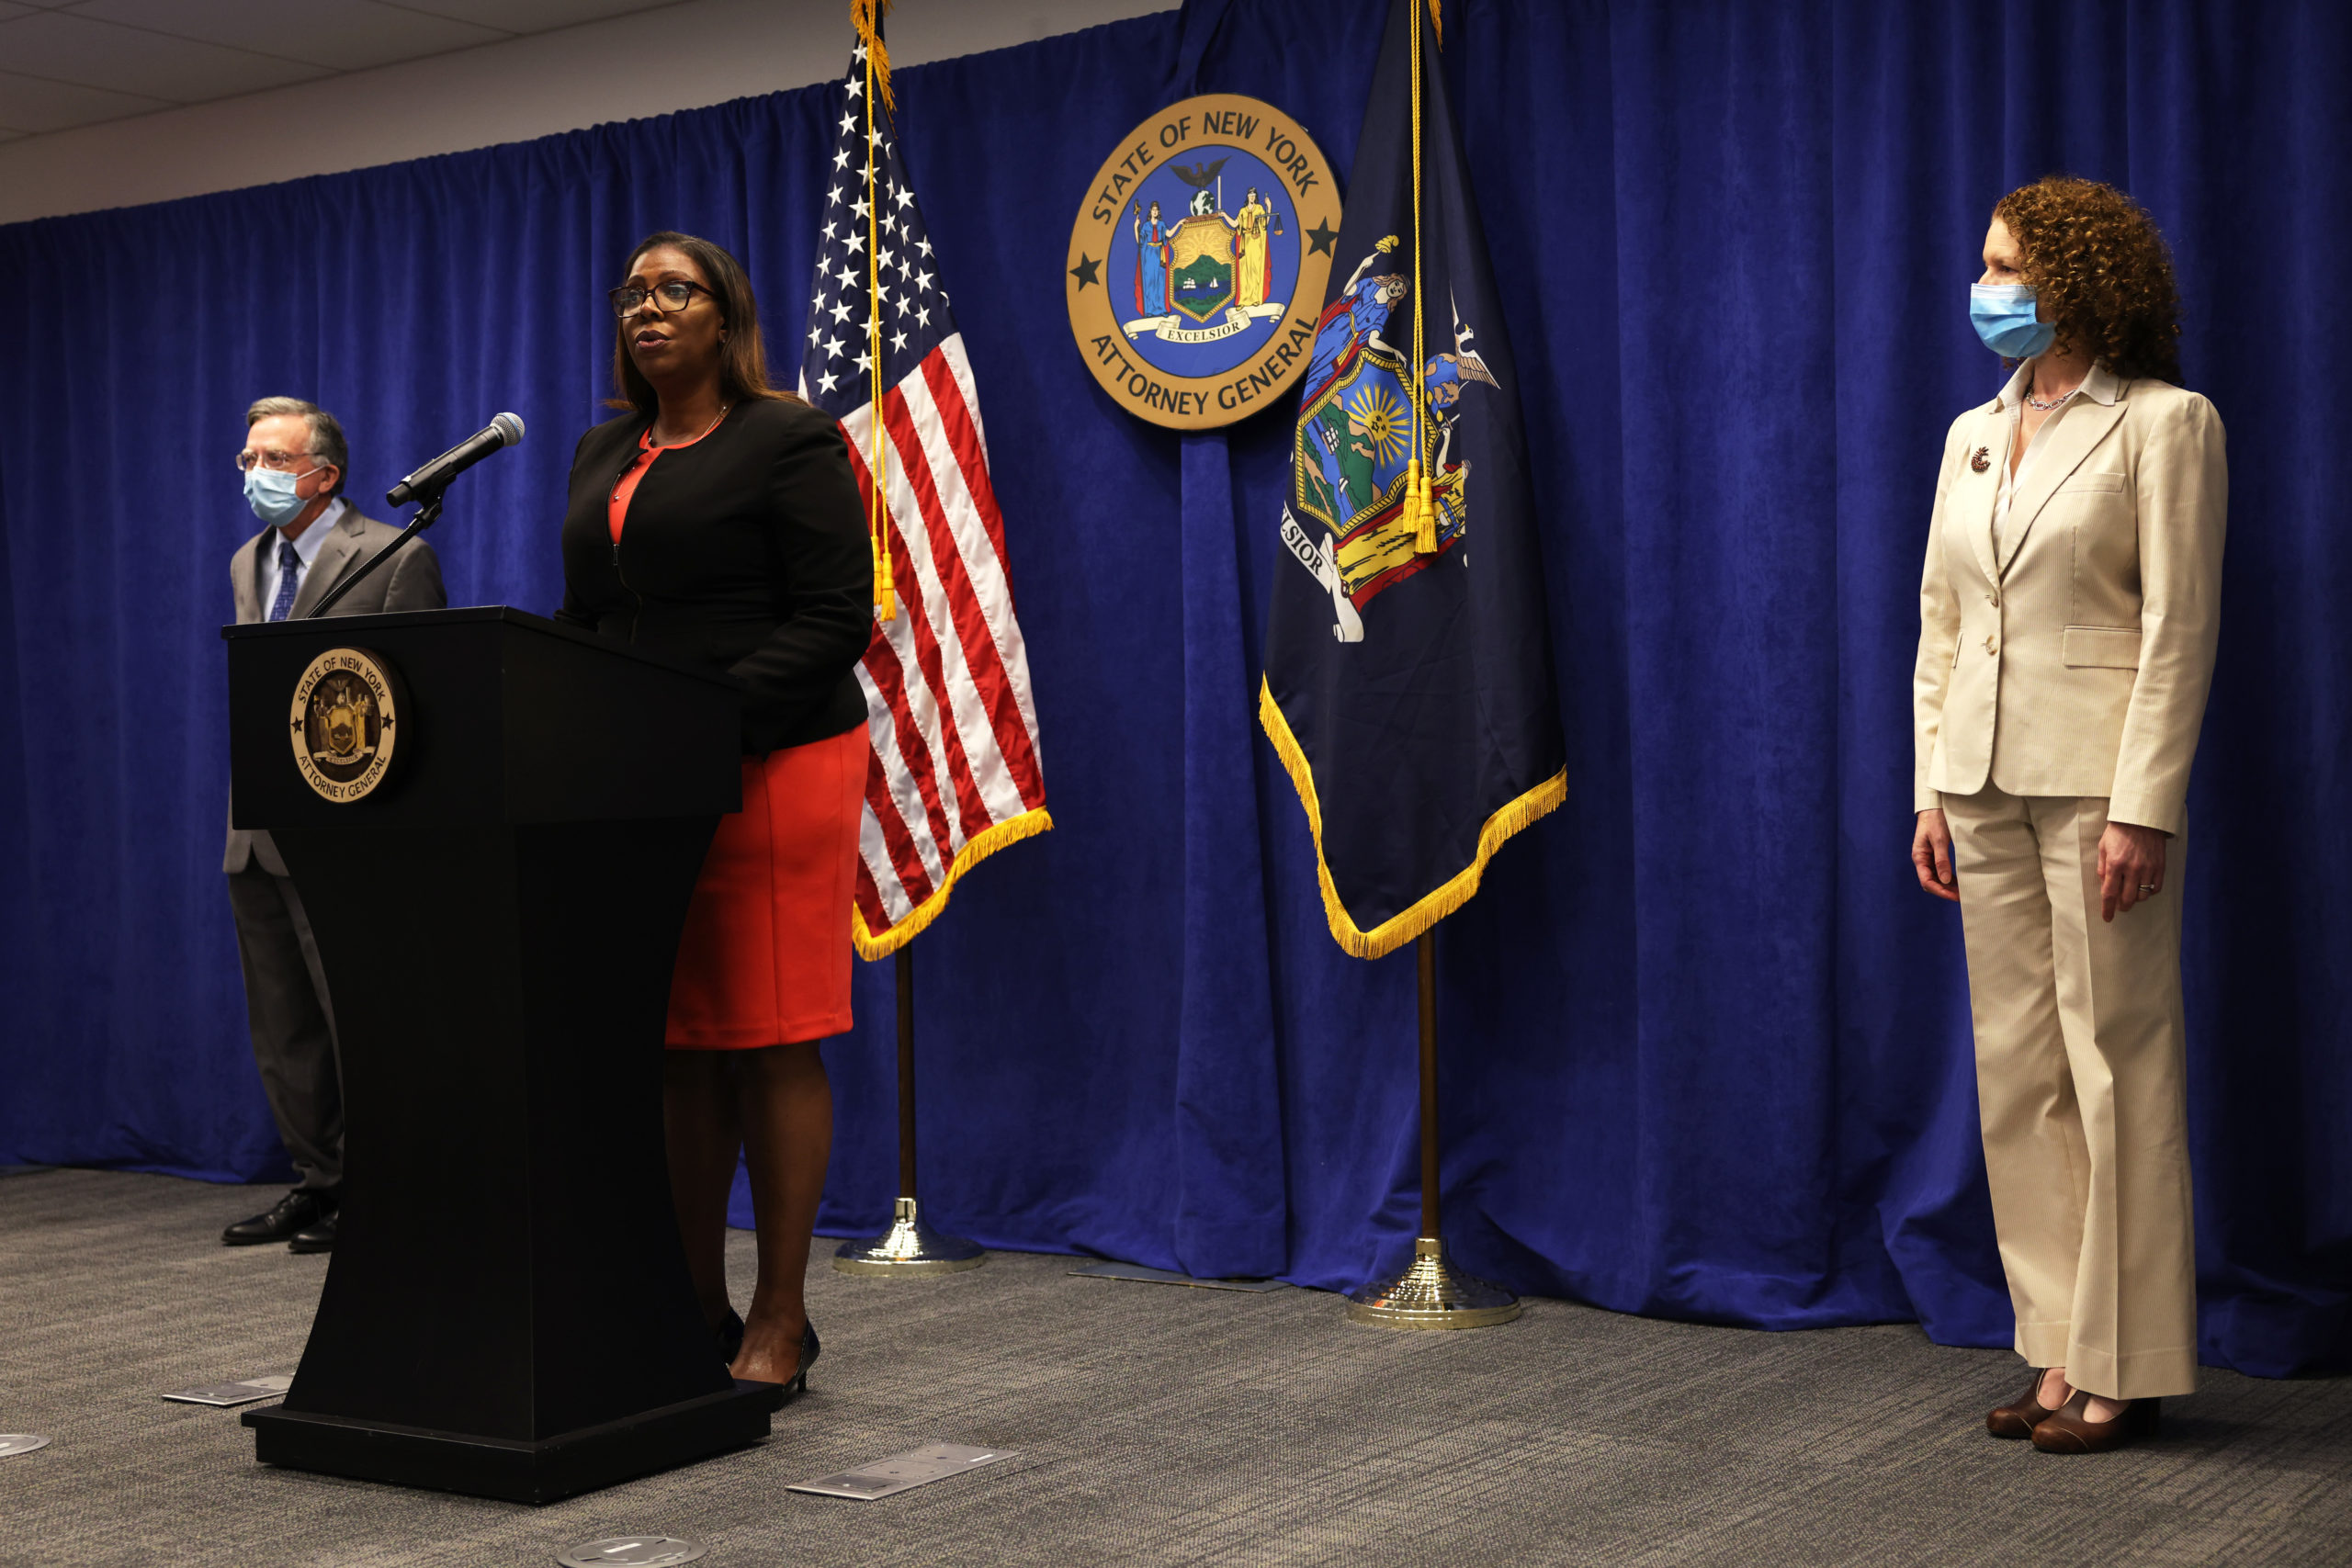 New York State Attorney General Letitia James speaks during a press conference announcing a lawsuit to dissolve the NRA on Aug. 6 in New York City. (Michael M. Santiago/Getty Images)